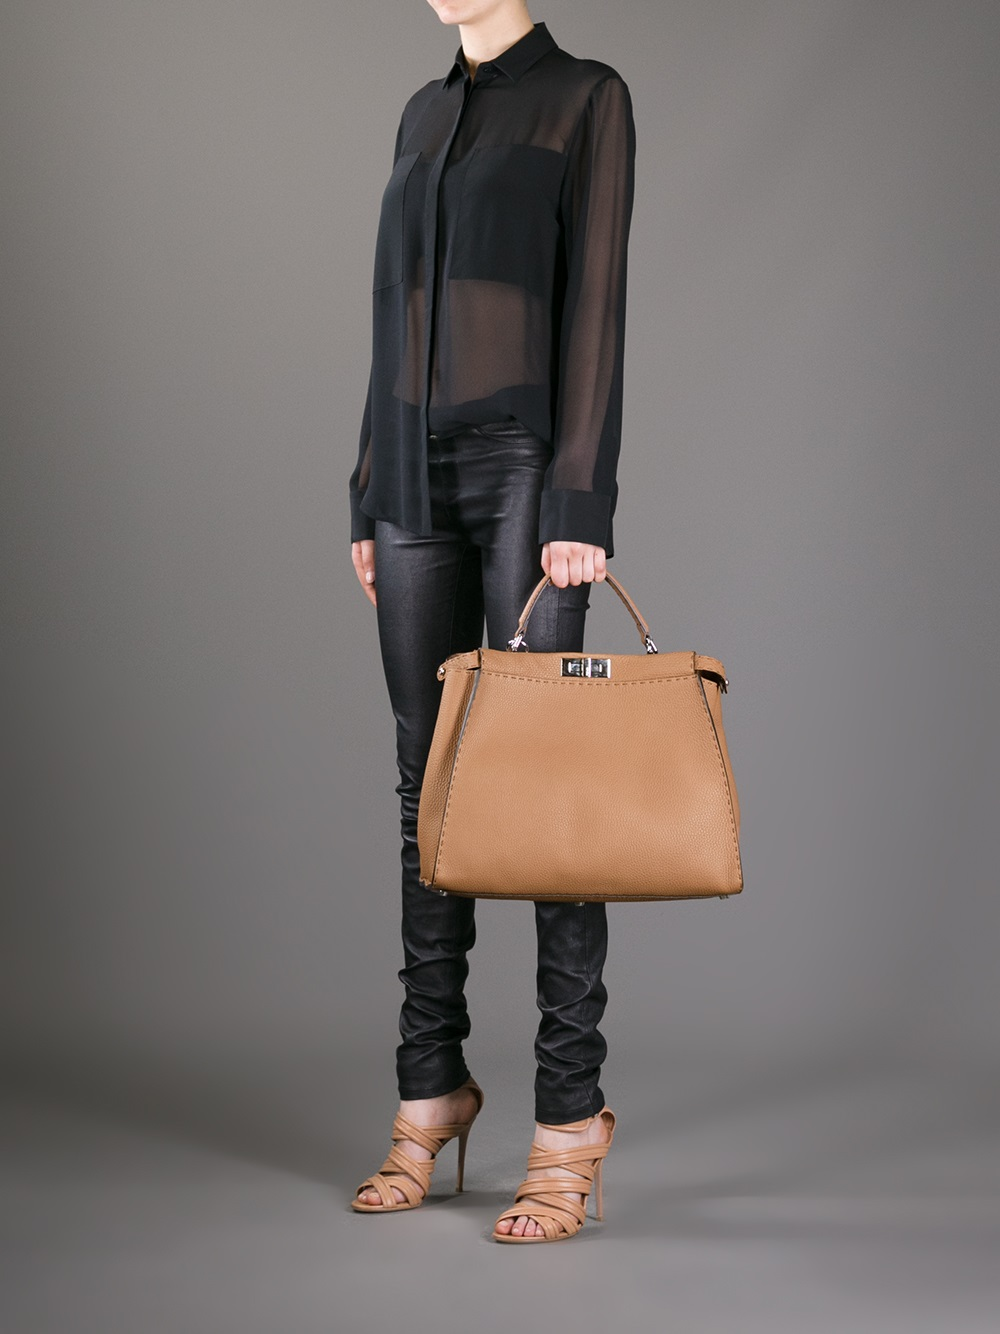 a90a7175b1 Fendi Selleria Peekaboo Tote Bag in Brown - Lyst